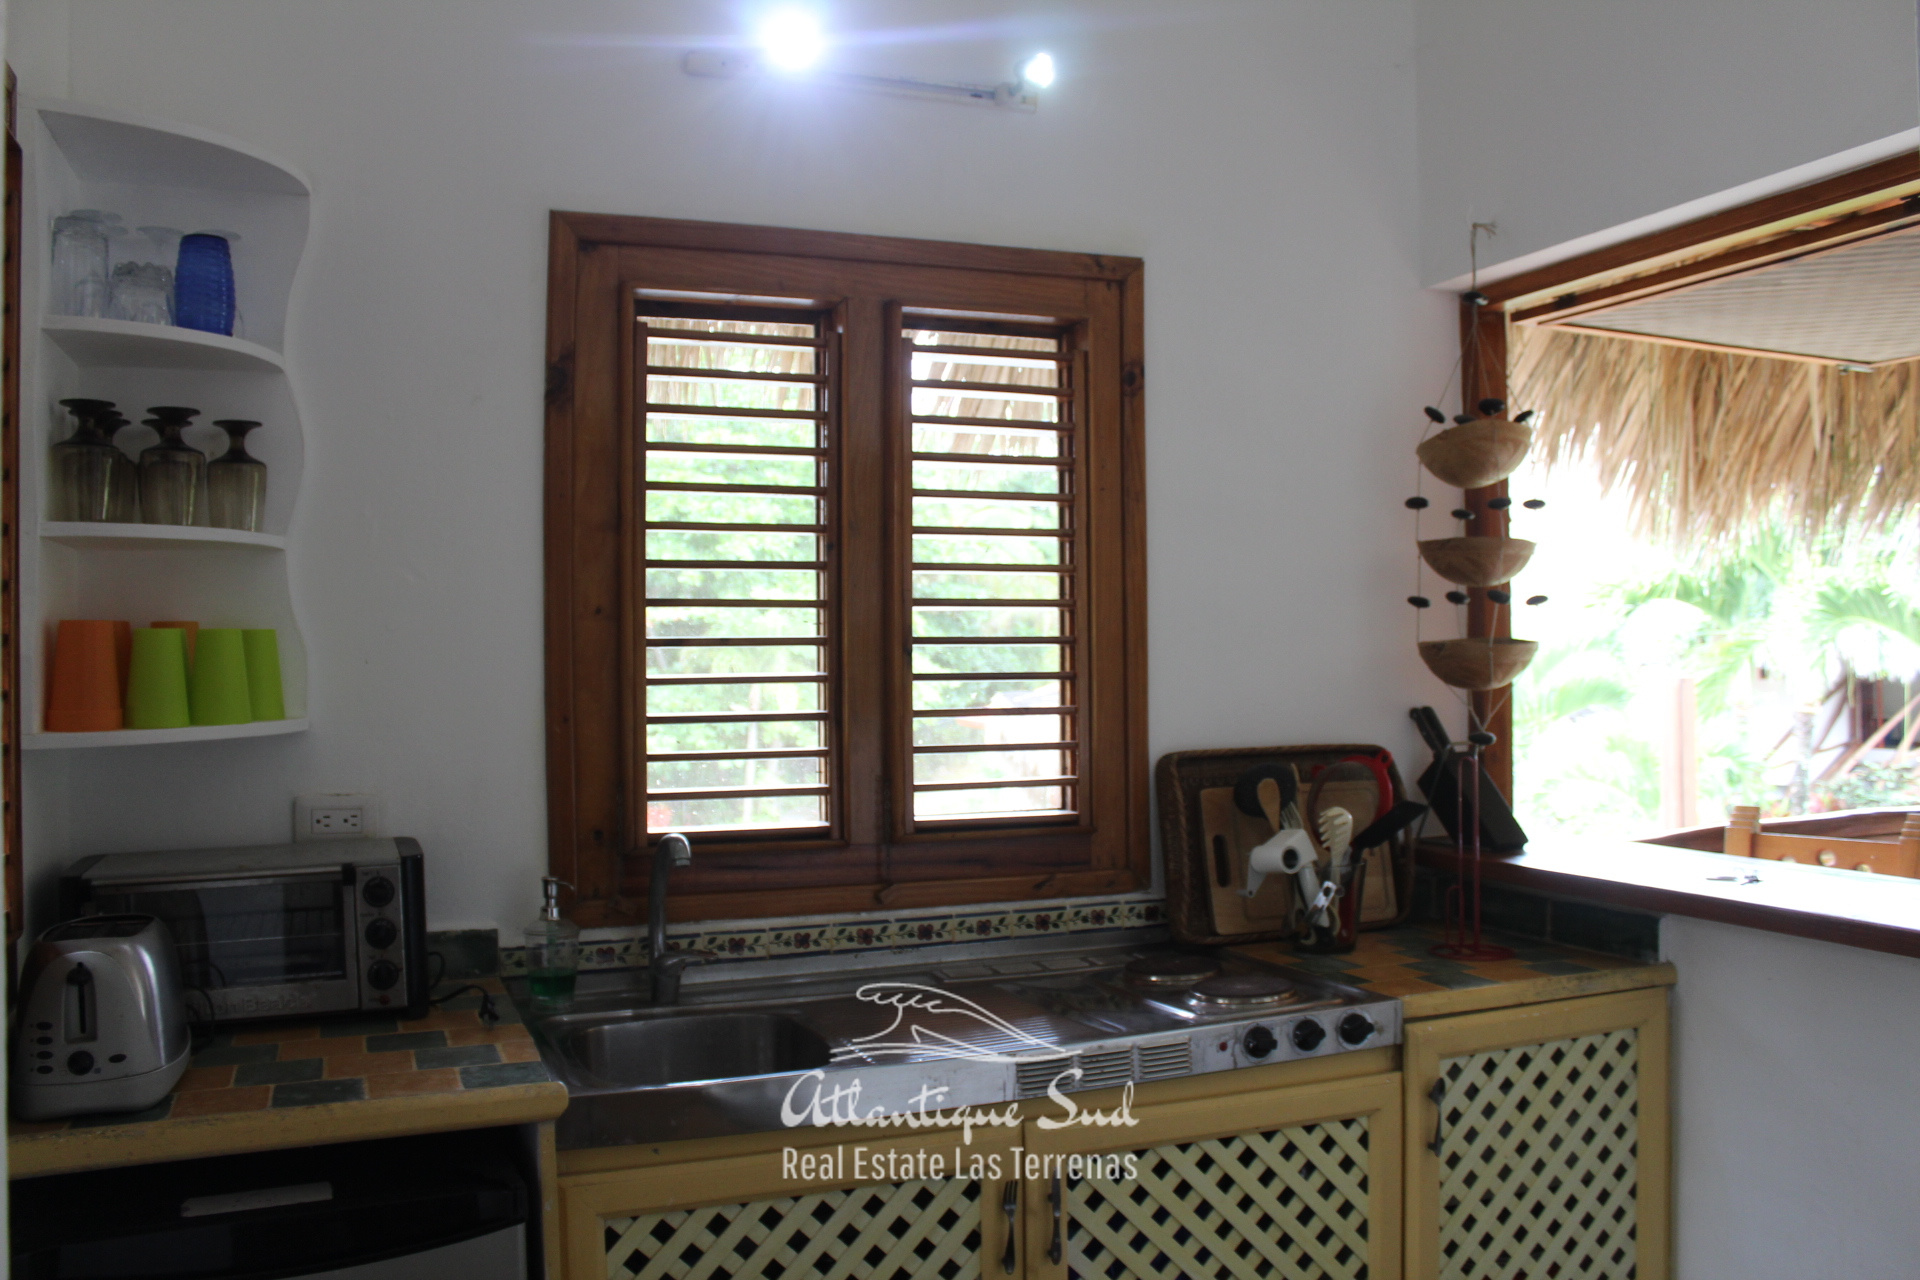 For-sale-Apartment-in-beachfront-community-with-mezzanine-Las-Terrenas_4789 (1).JPG